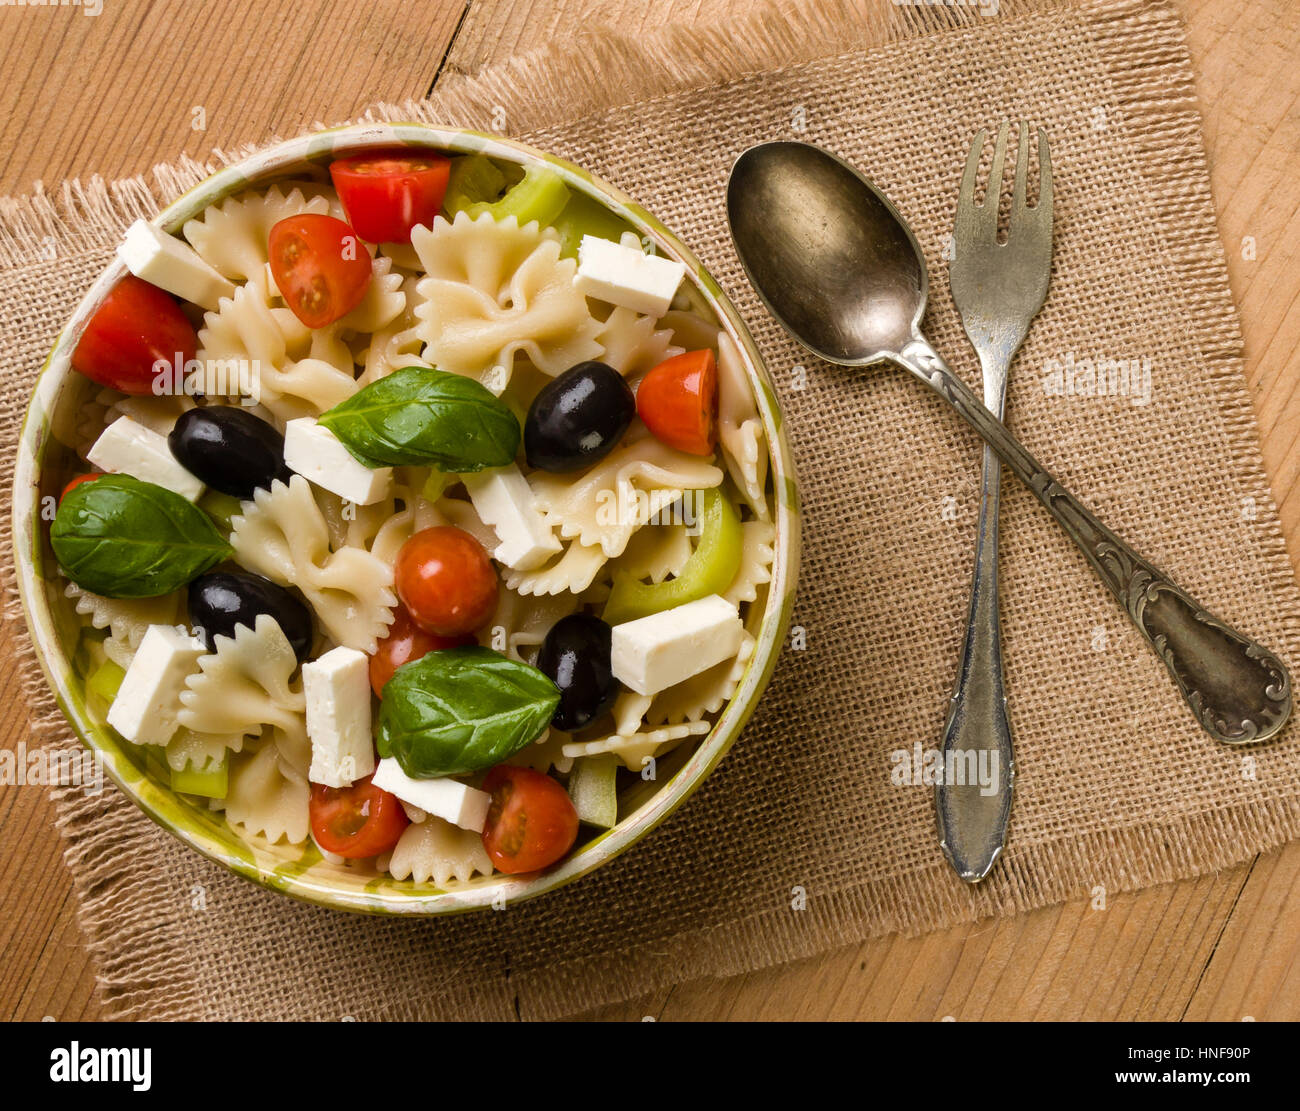 rustic farfalle salad in bowl on wooden table - Stock Image